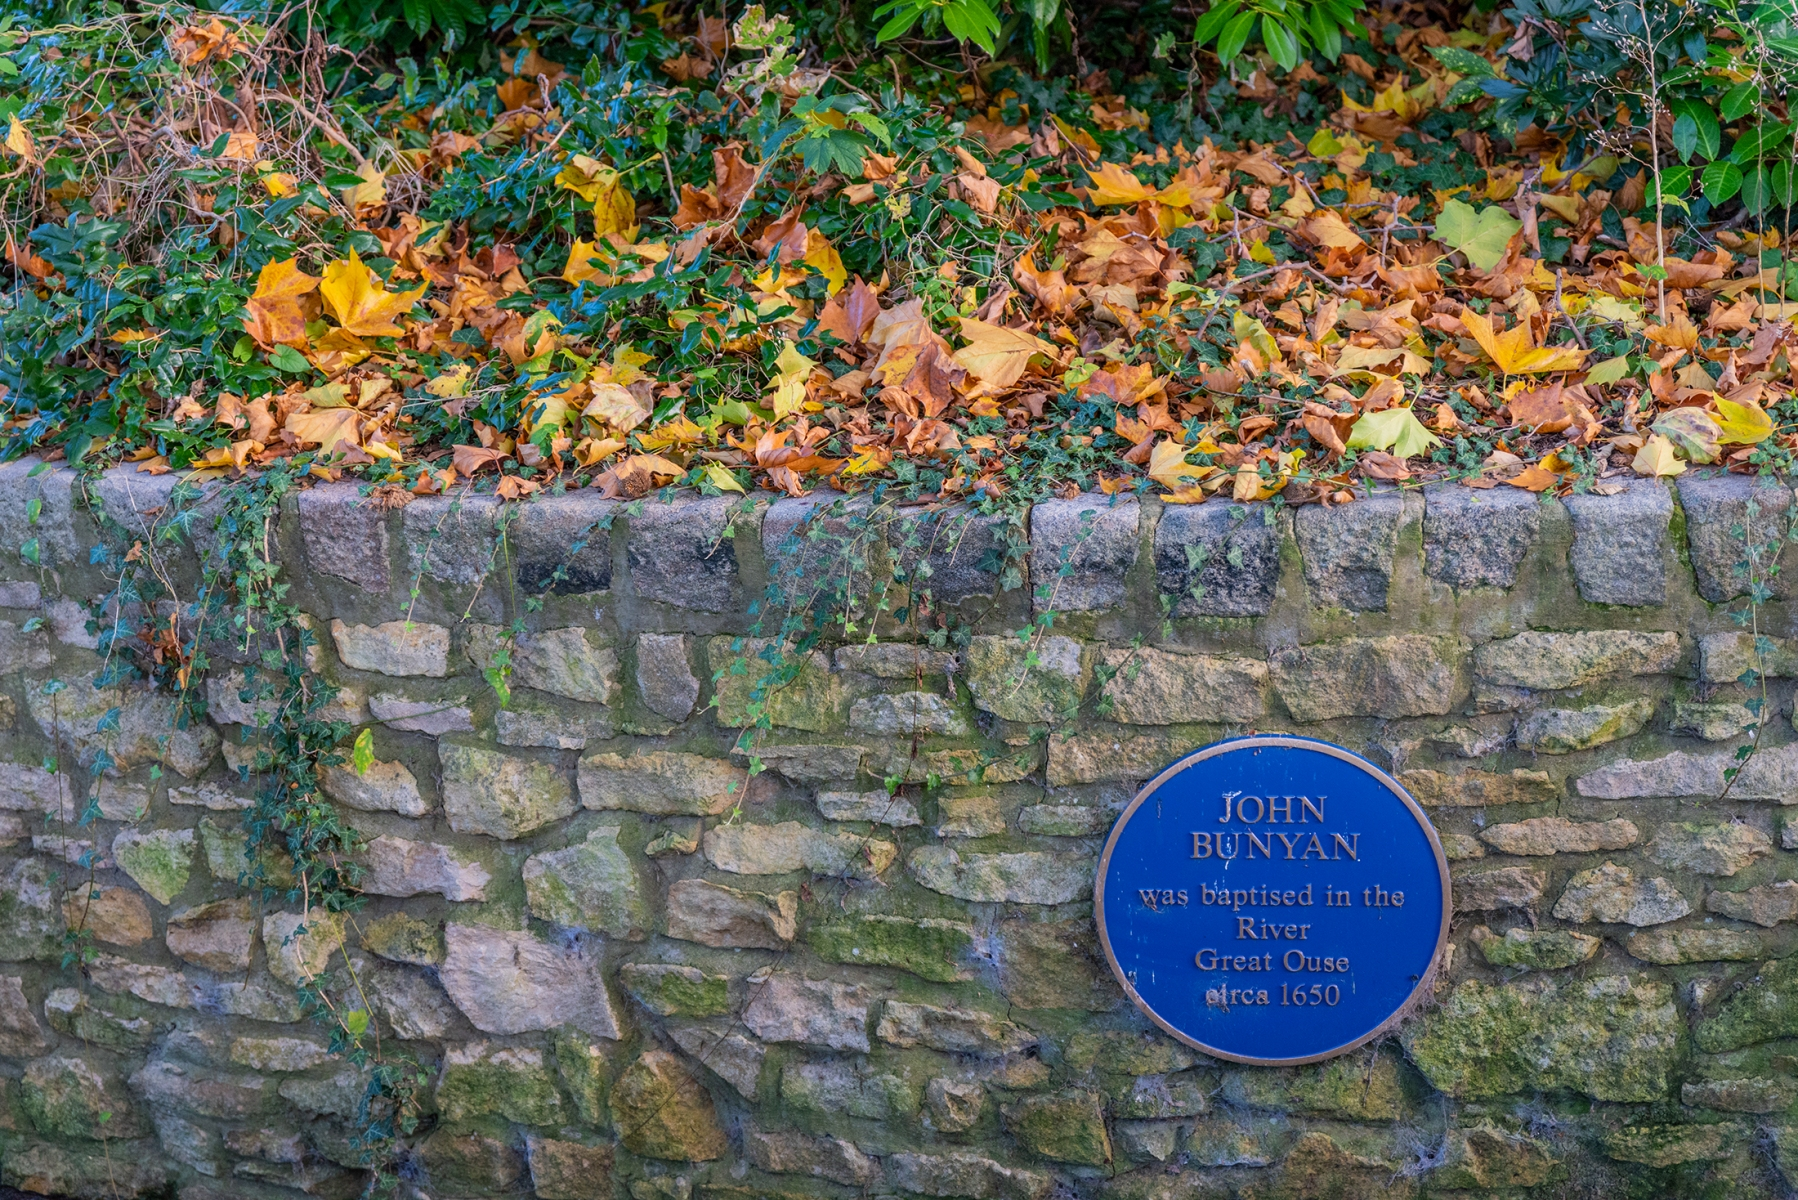 John Bunyan plaque, River Great Ouse, The Embankment, Bedford in Autumn